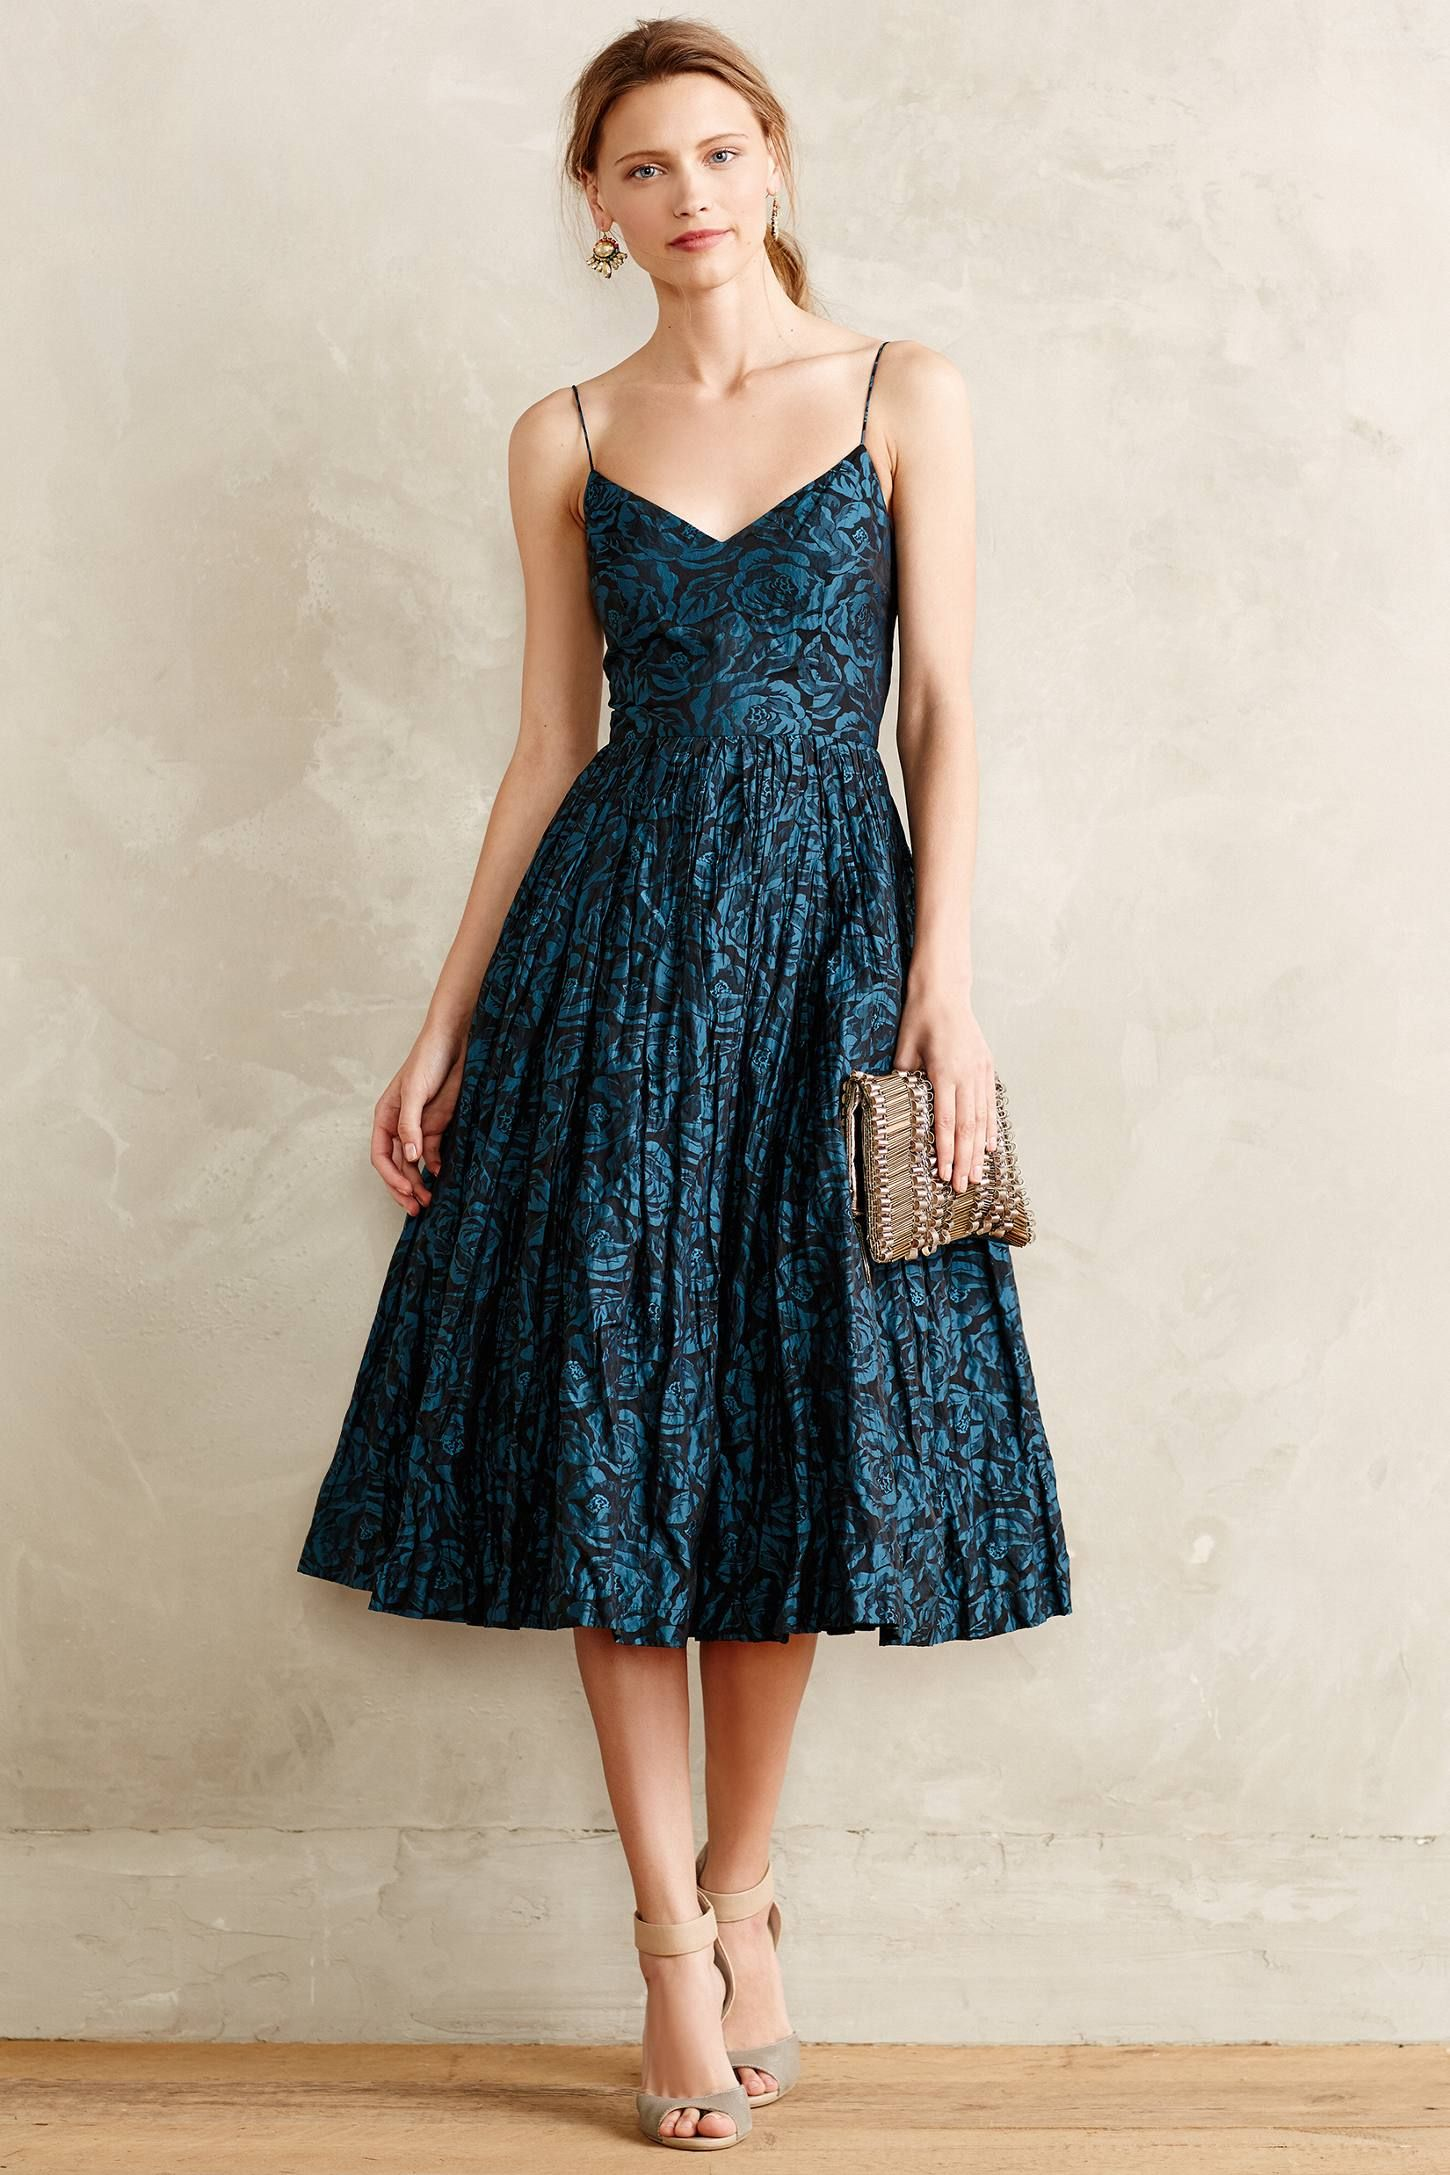 Glinted taffeta midi dress your anthropologie favorites for Anthropologie wedding guest dresses